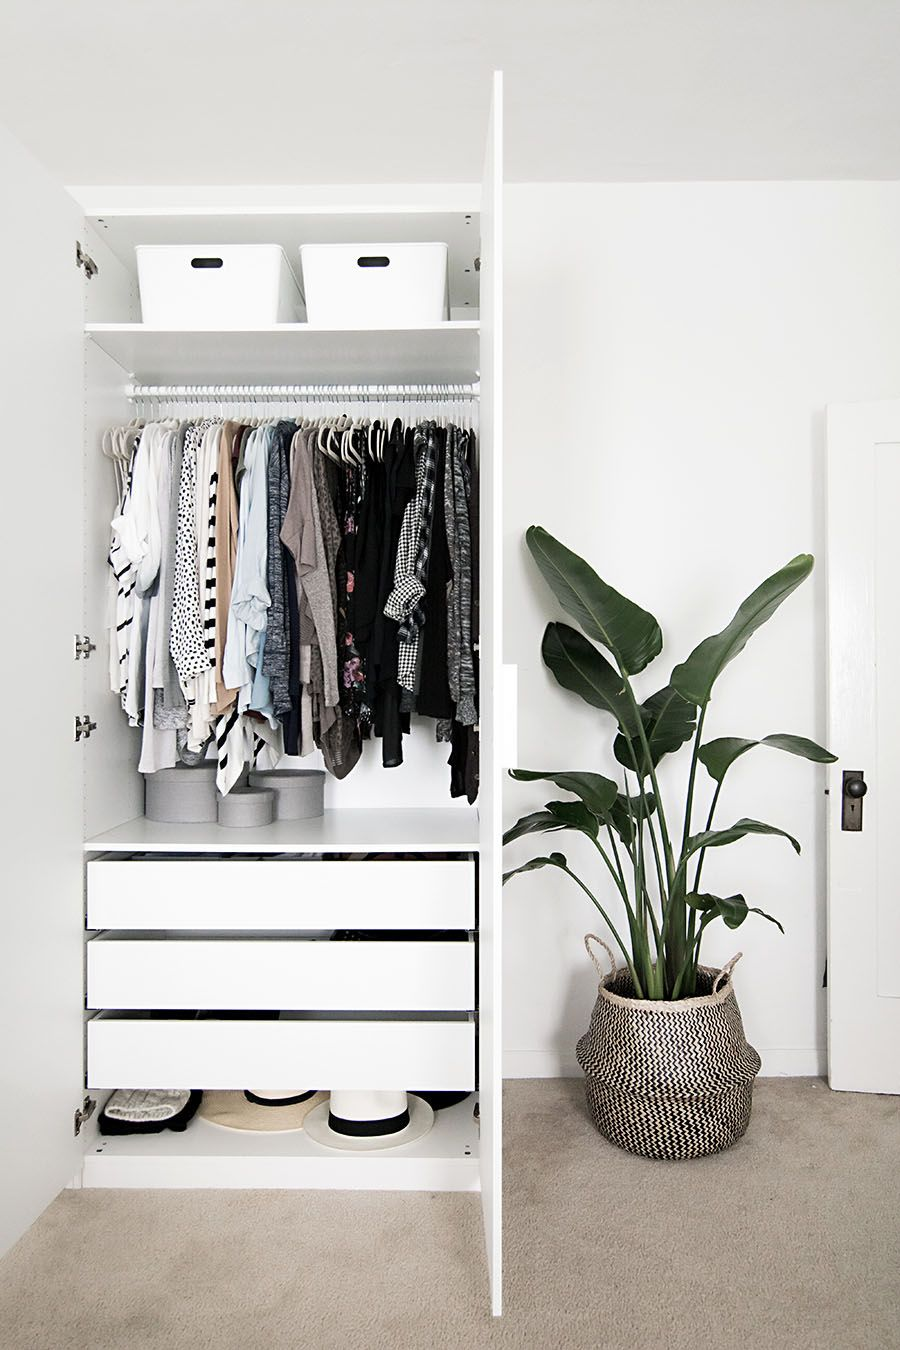 hideaway storage ideas for small spaces small space on extraordinary clever minimalist wardrobe ideas id=12781